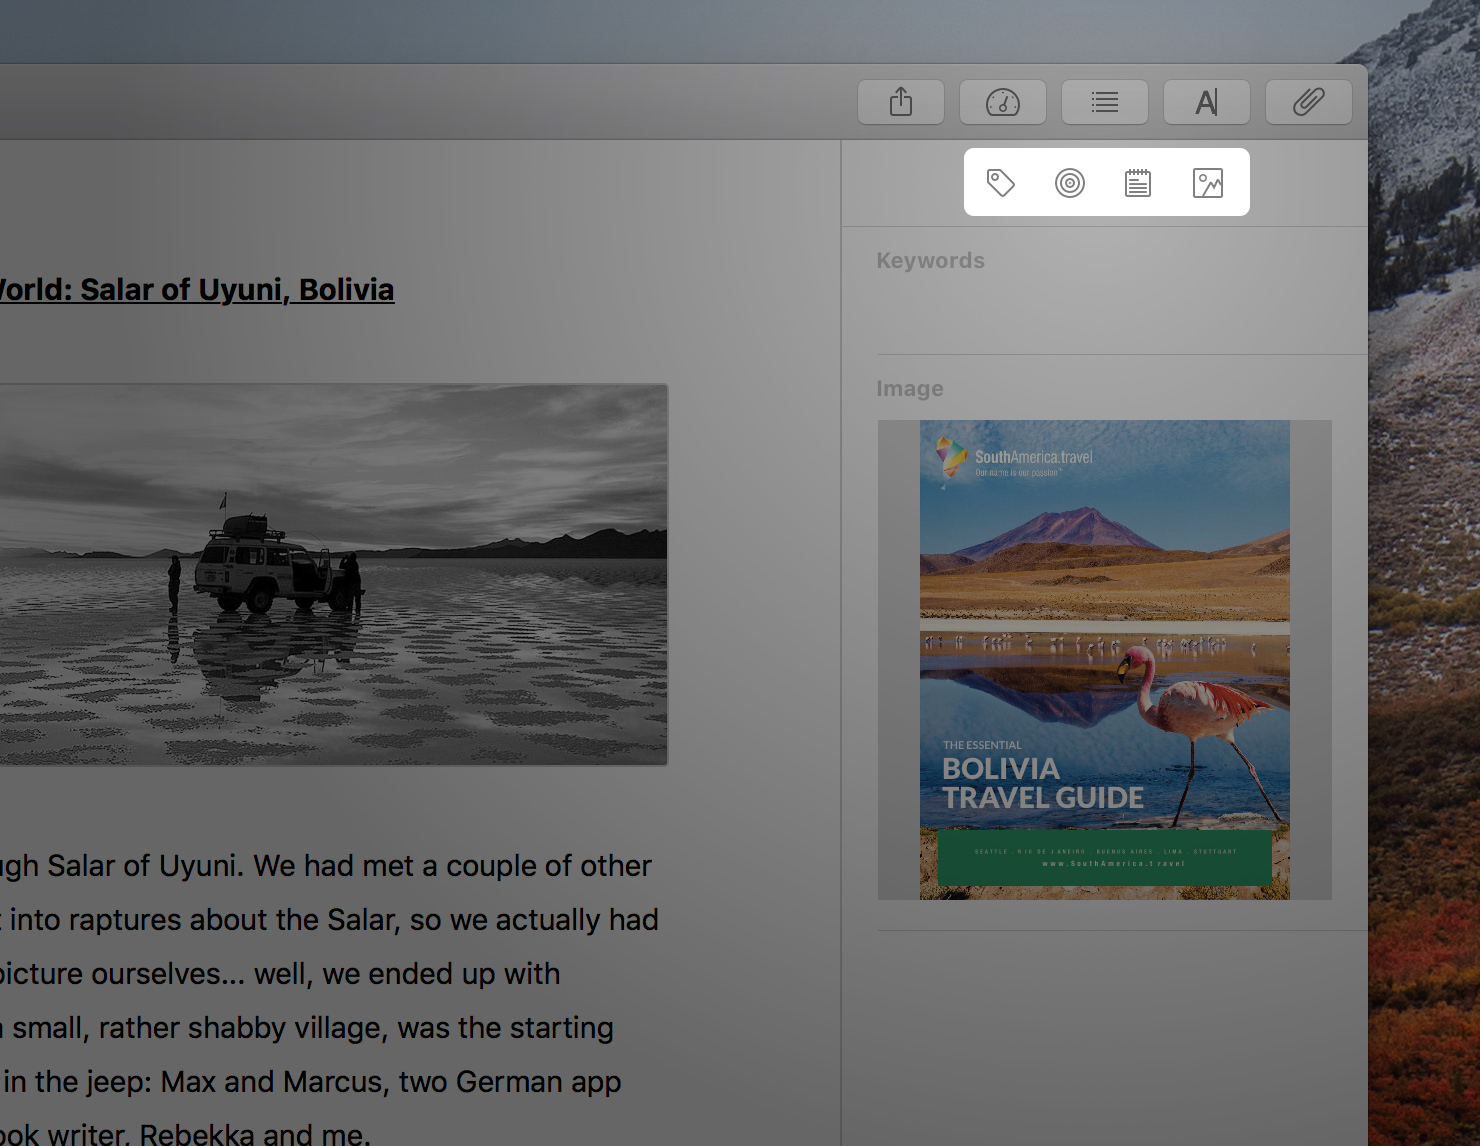 Attachments types: keywords, goals, notes and images/PDF files (from left to right)